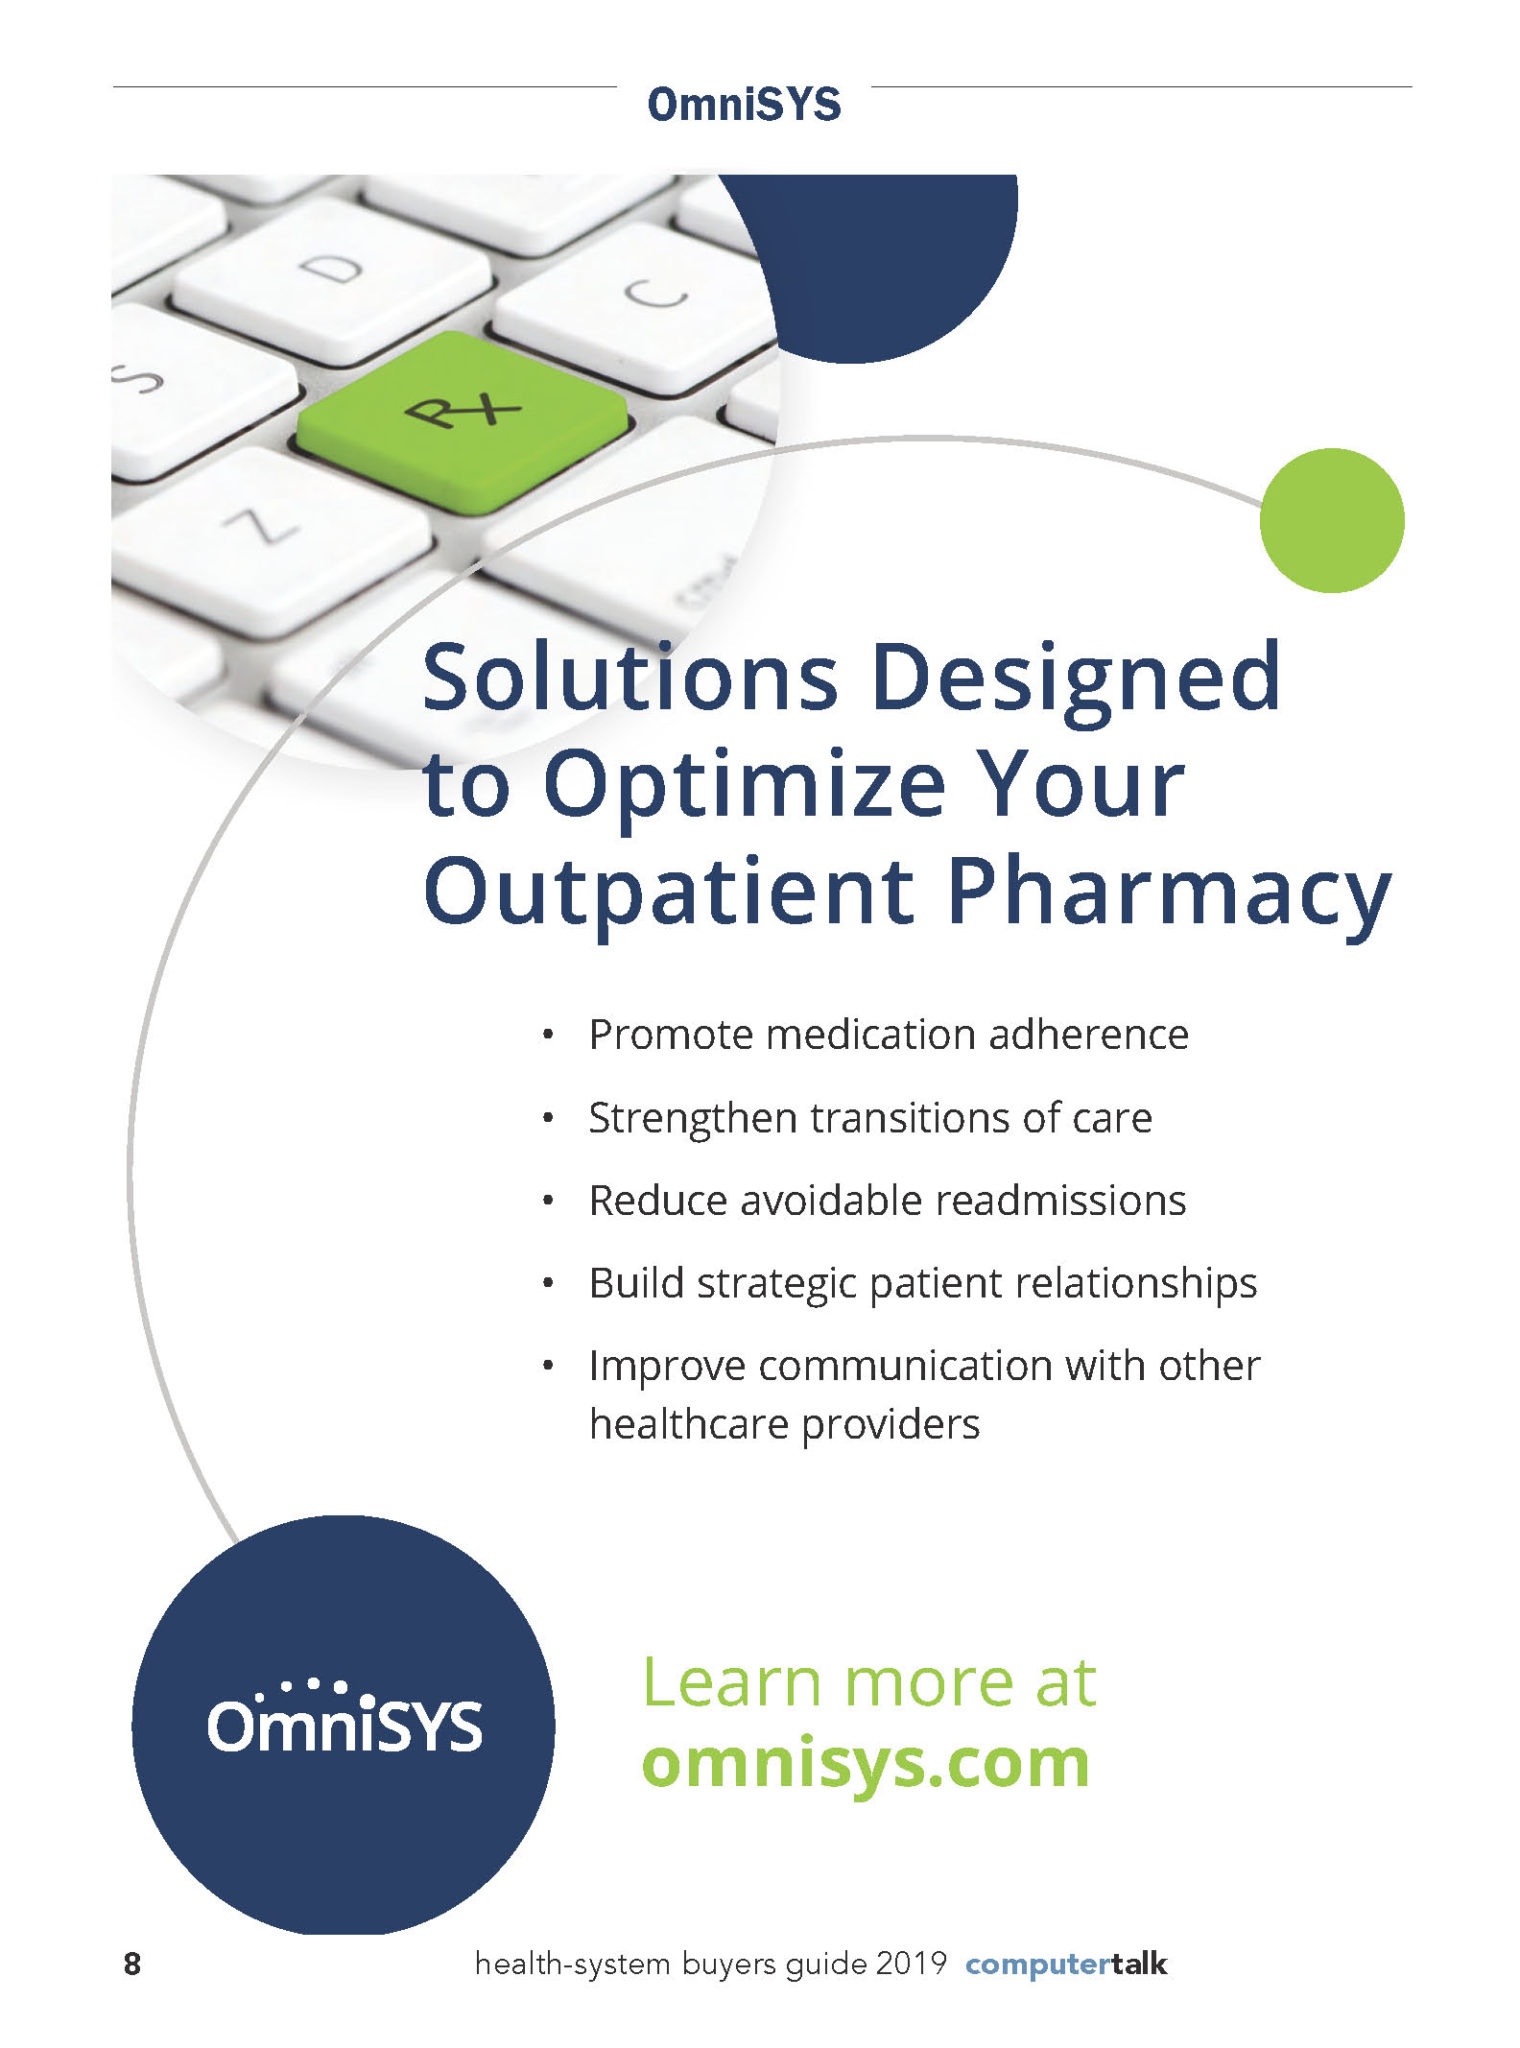 OmniSYS HEALTH-SYSTEM BUYERS GUIDE PROFILE